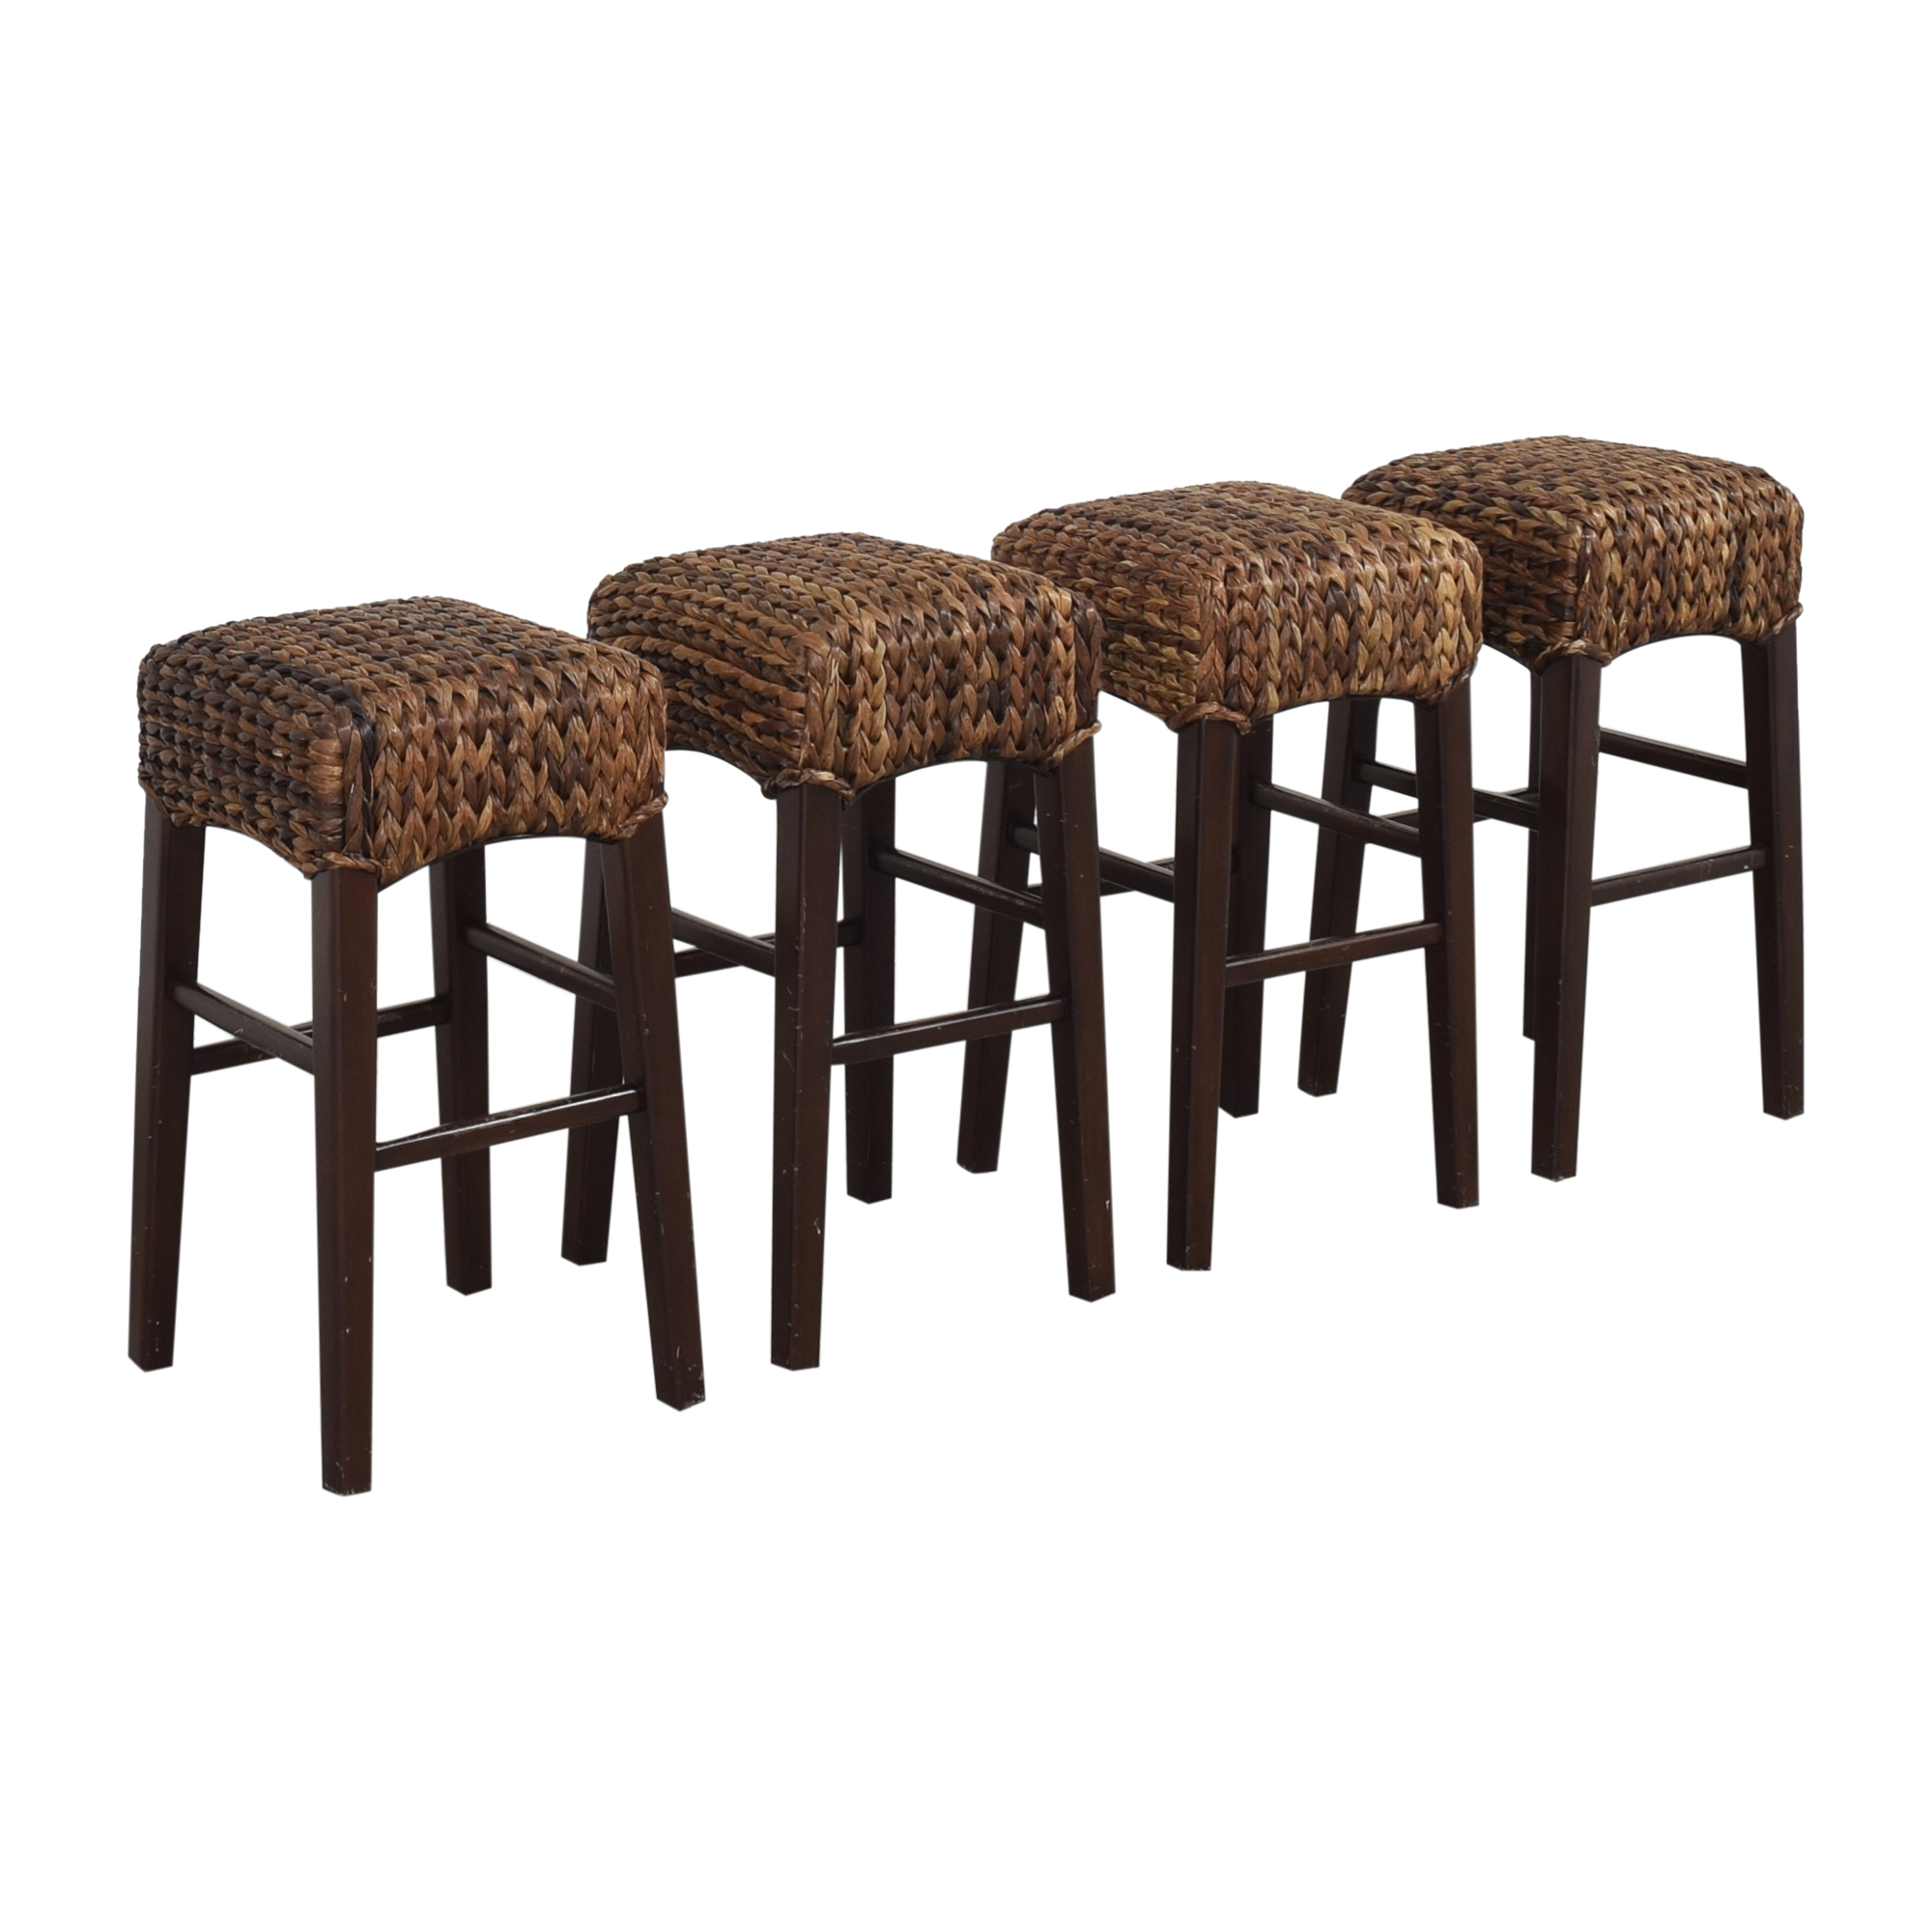 Pottery Barn Pottery Barn Seagrass Counter Stools coupon